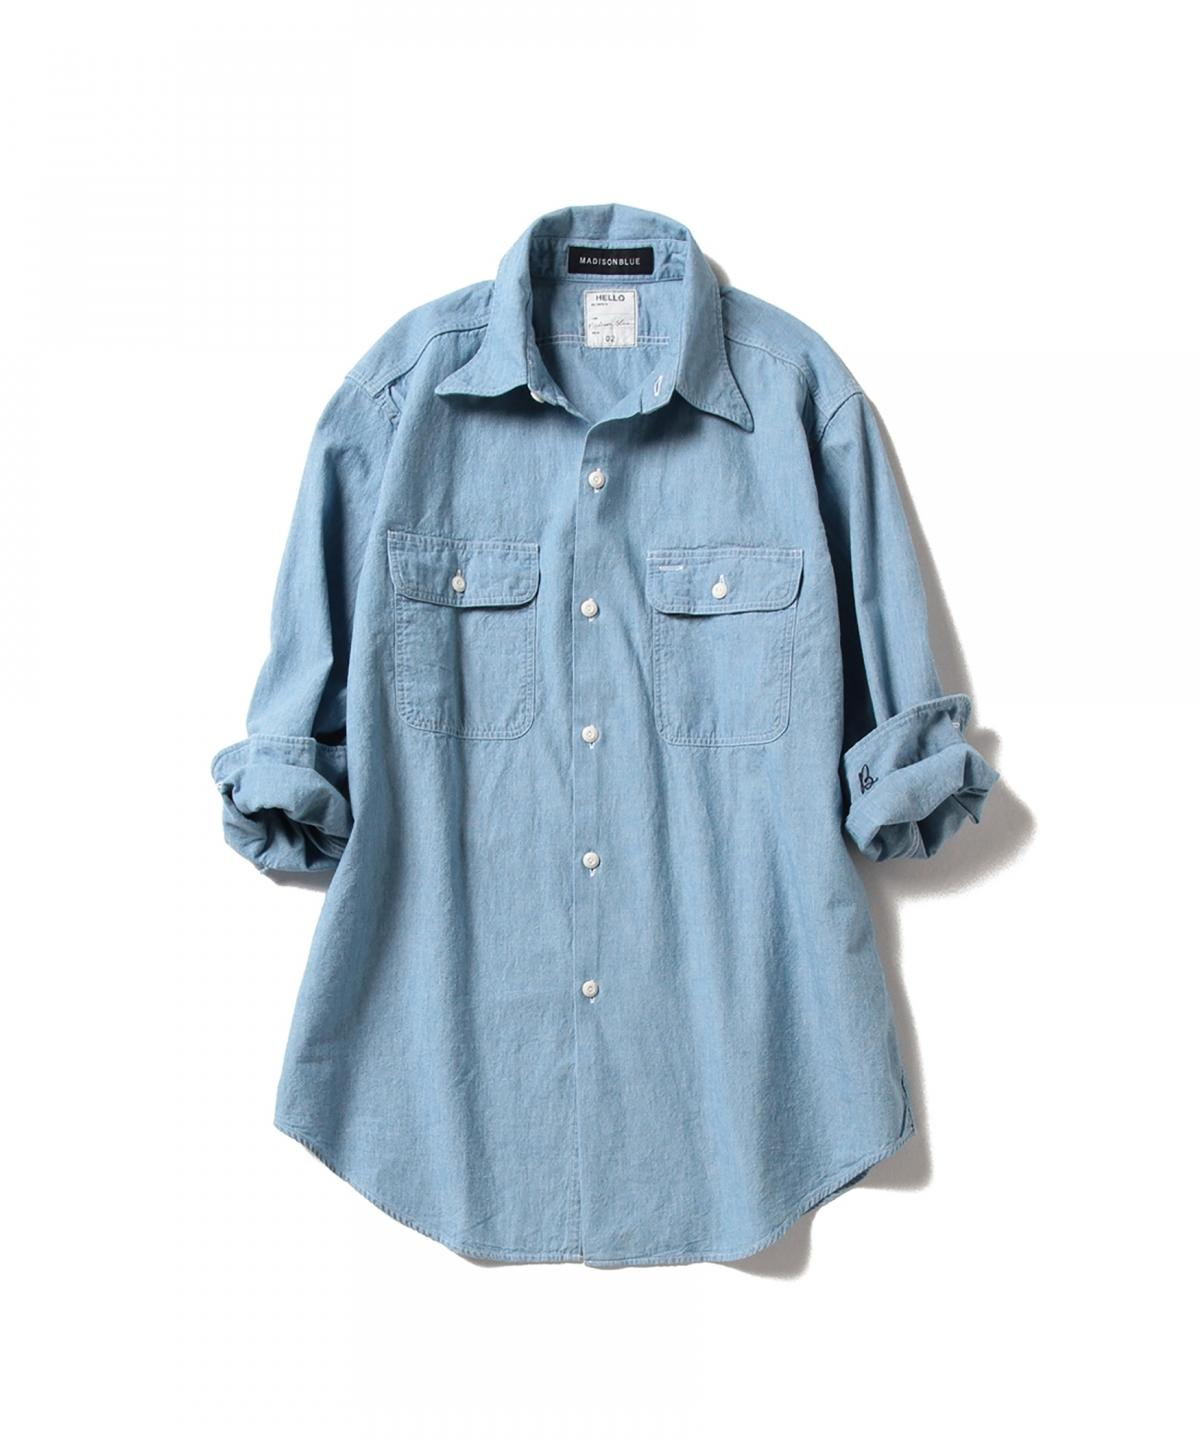 HAMPTON Chambray Shirt Vaio Wash